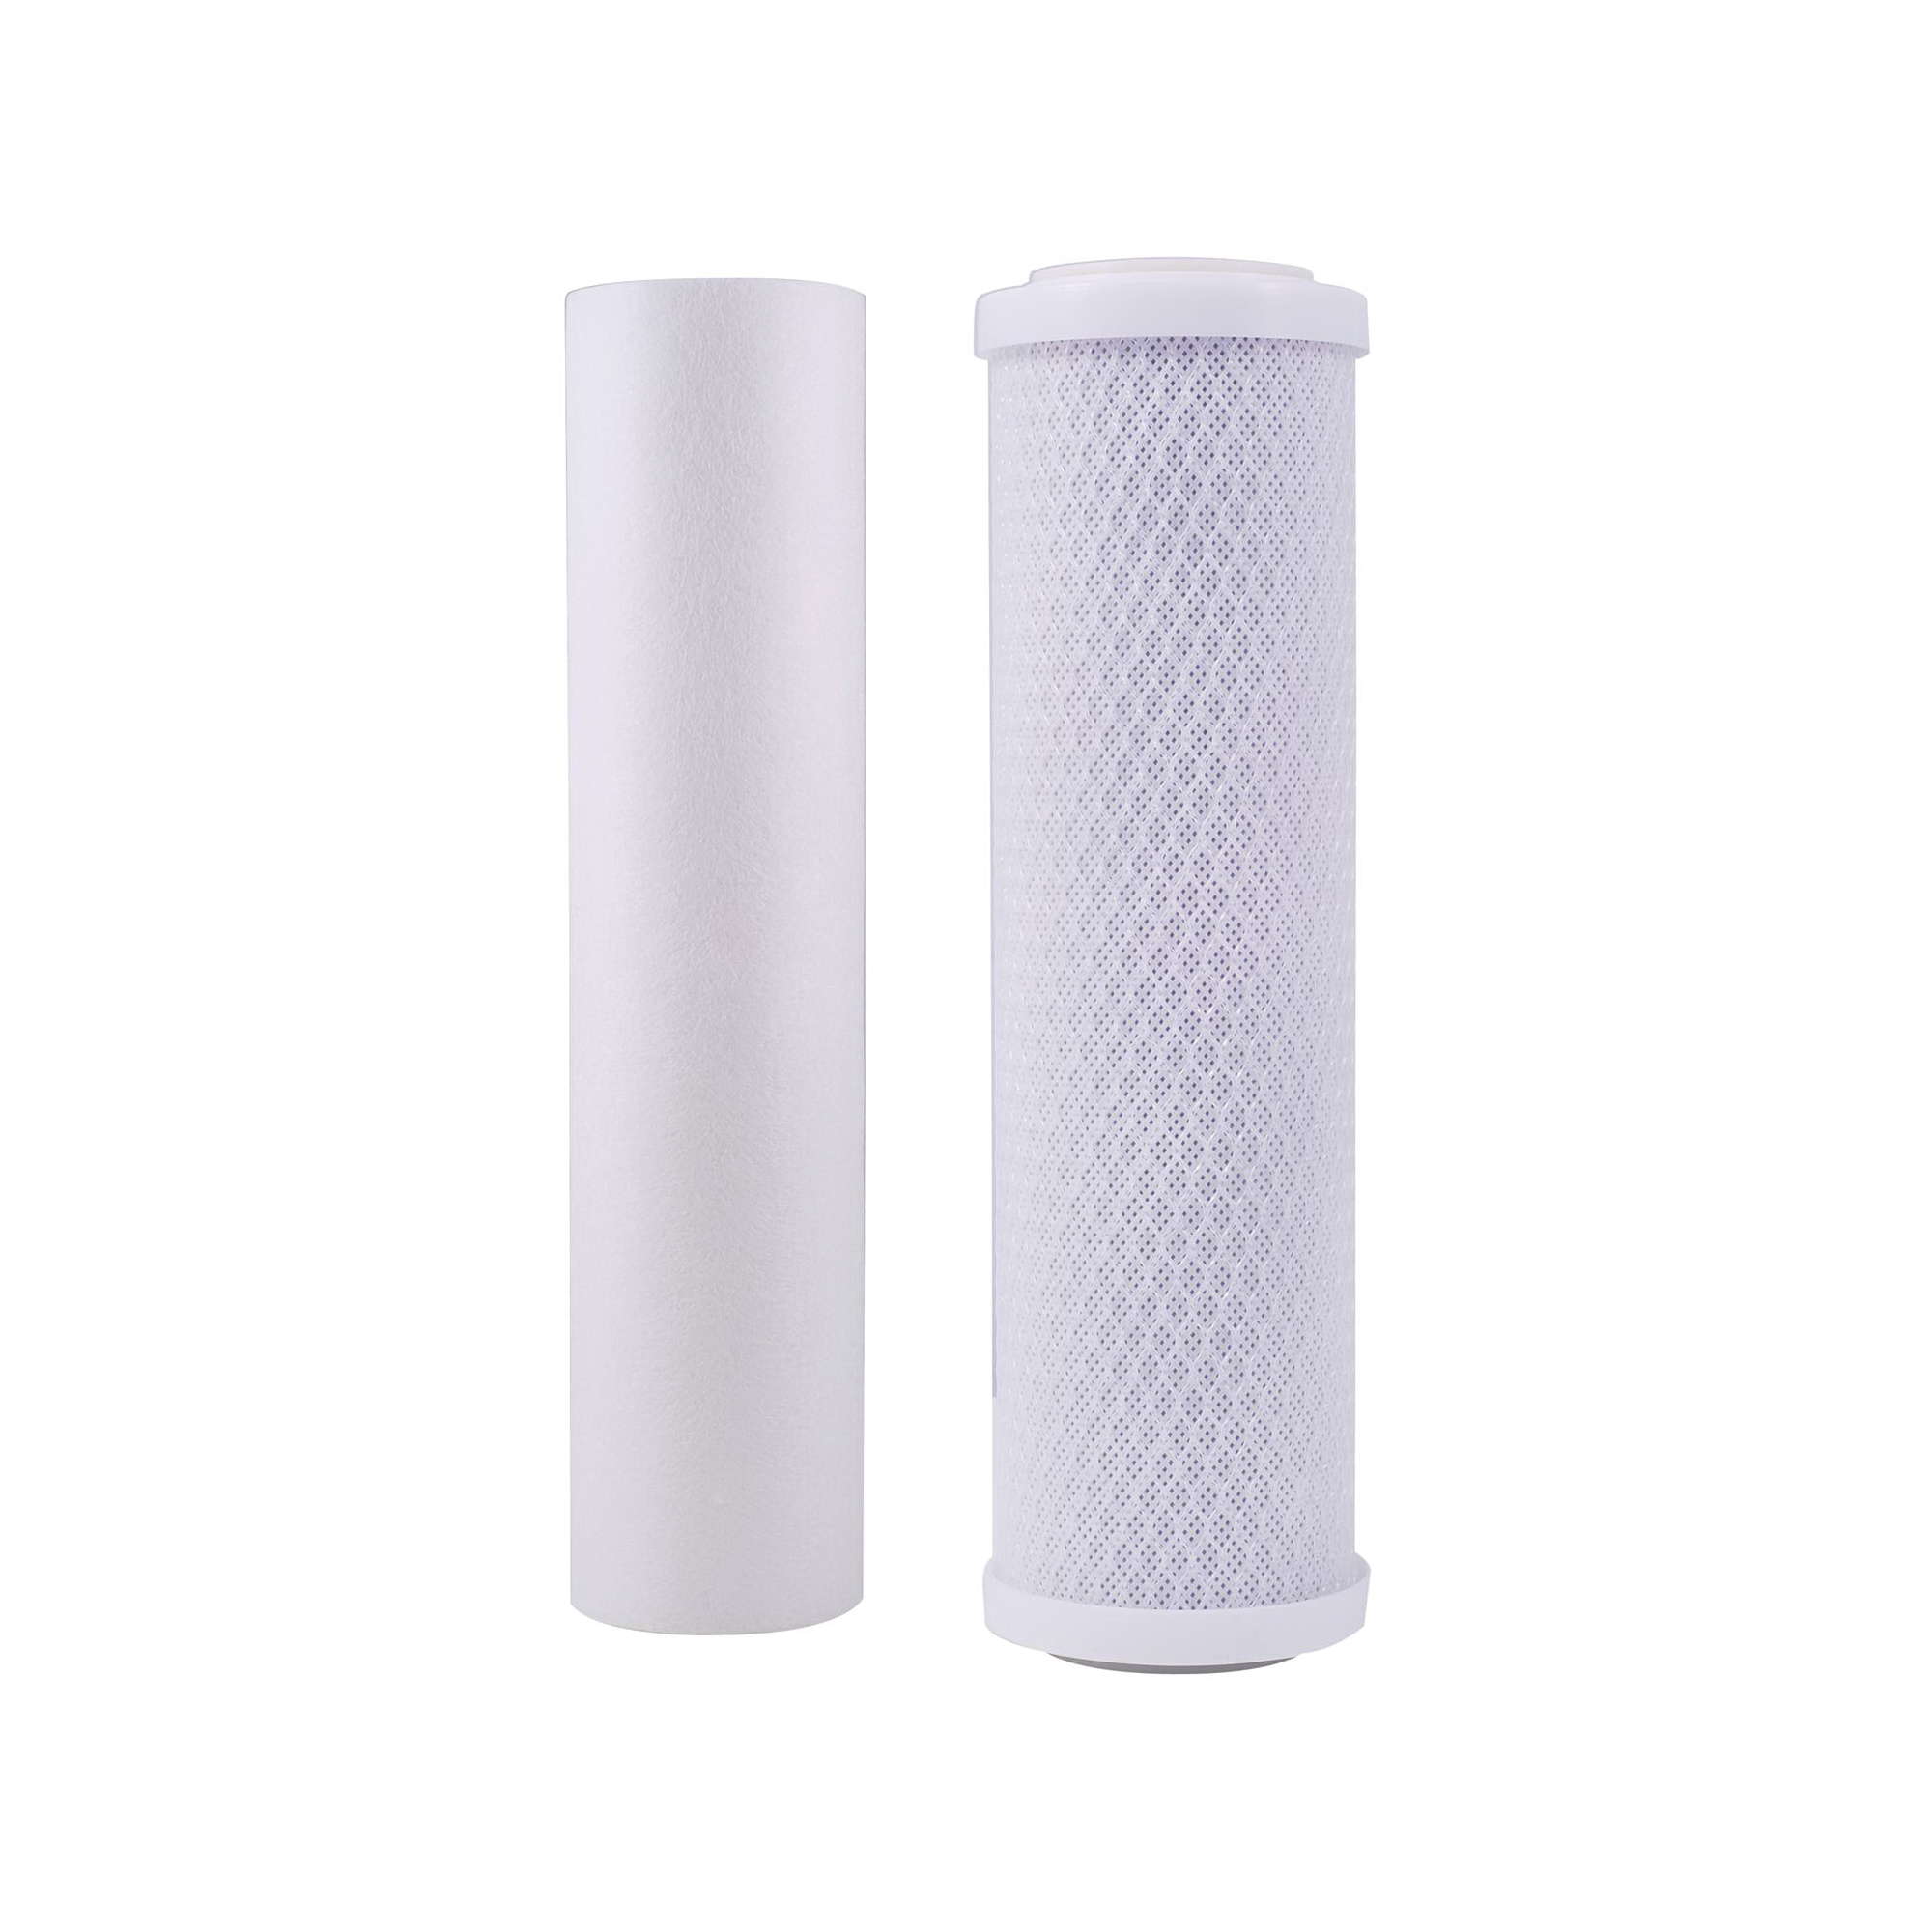 WATTS® 7100111 Replacement Filter Pack, 11 in W x 14-1/2 in H